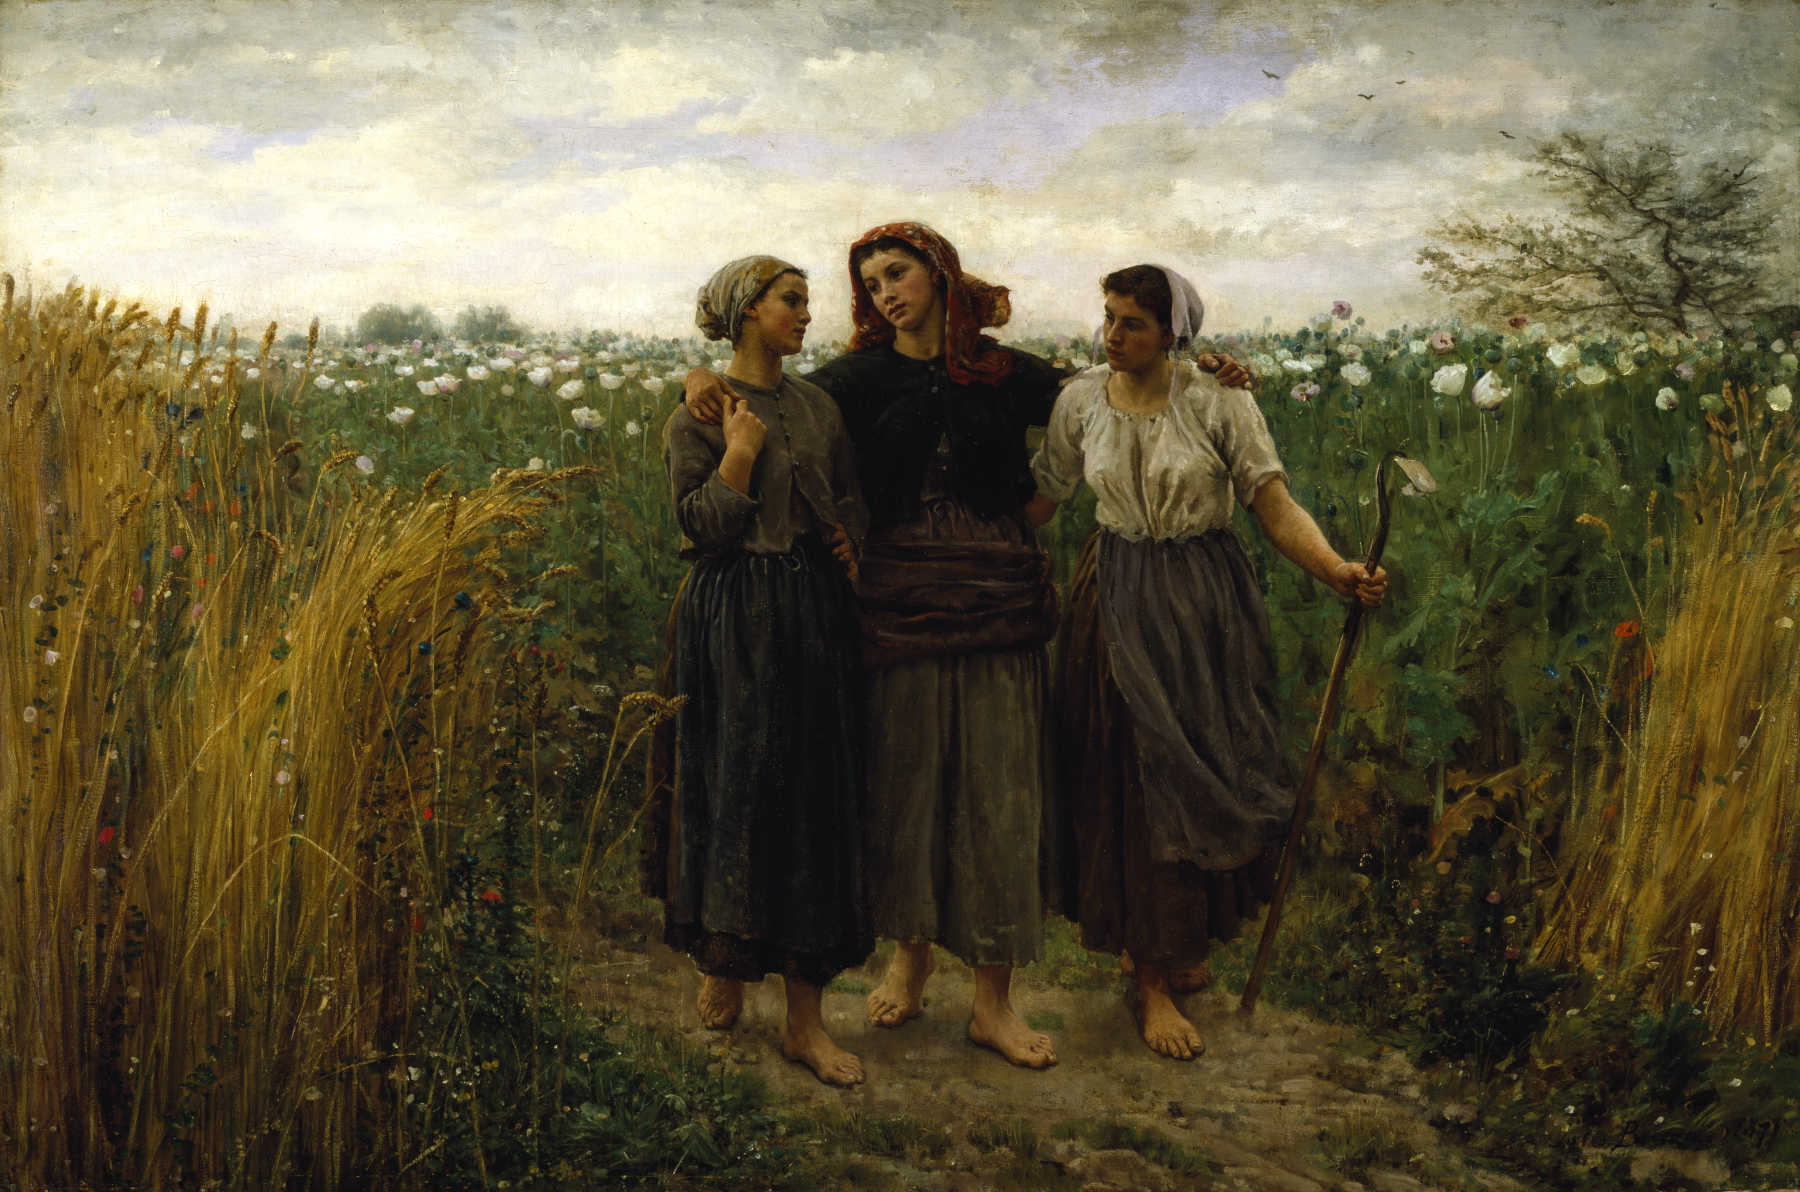 http://upload.wikimedia.org/wikipedia/commons/e/ef/Jules_Adolphe_Aim%C3%A9_Louis_Breton_-_Returning_from_the_Fields_-_Walters_3758.jpg